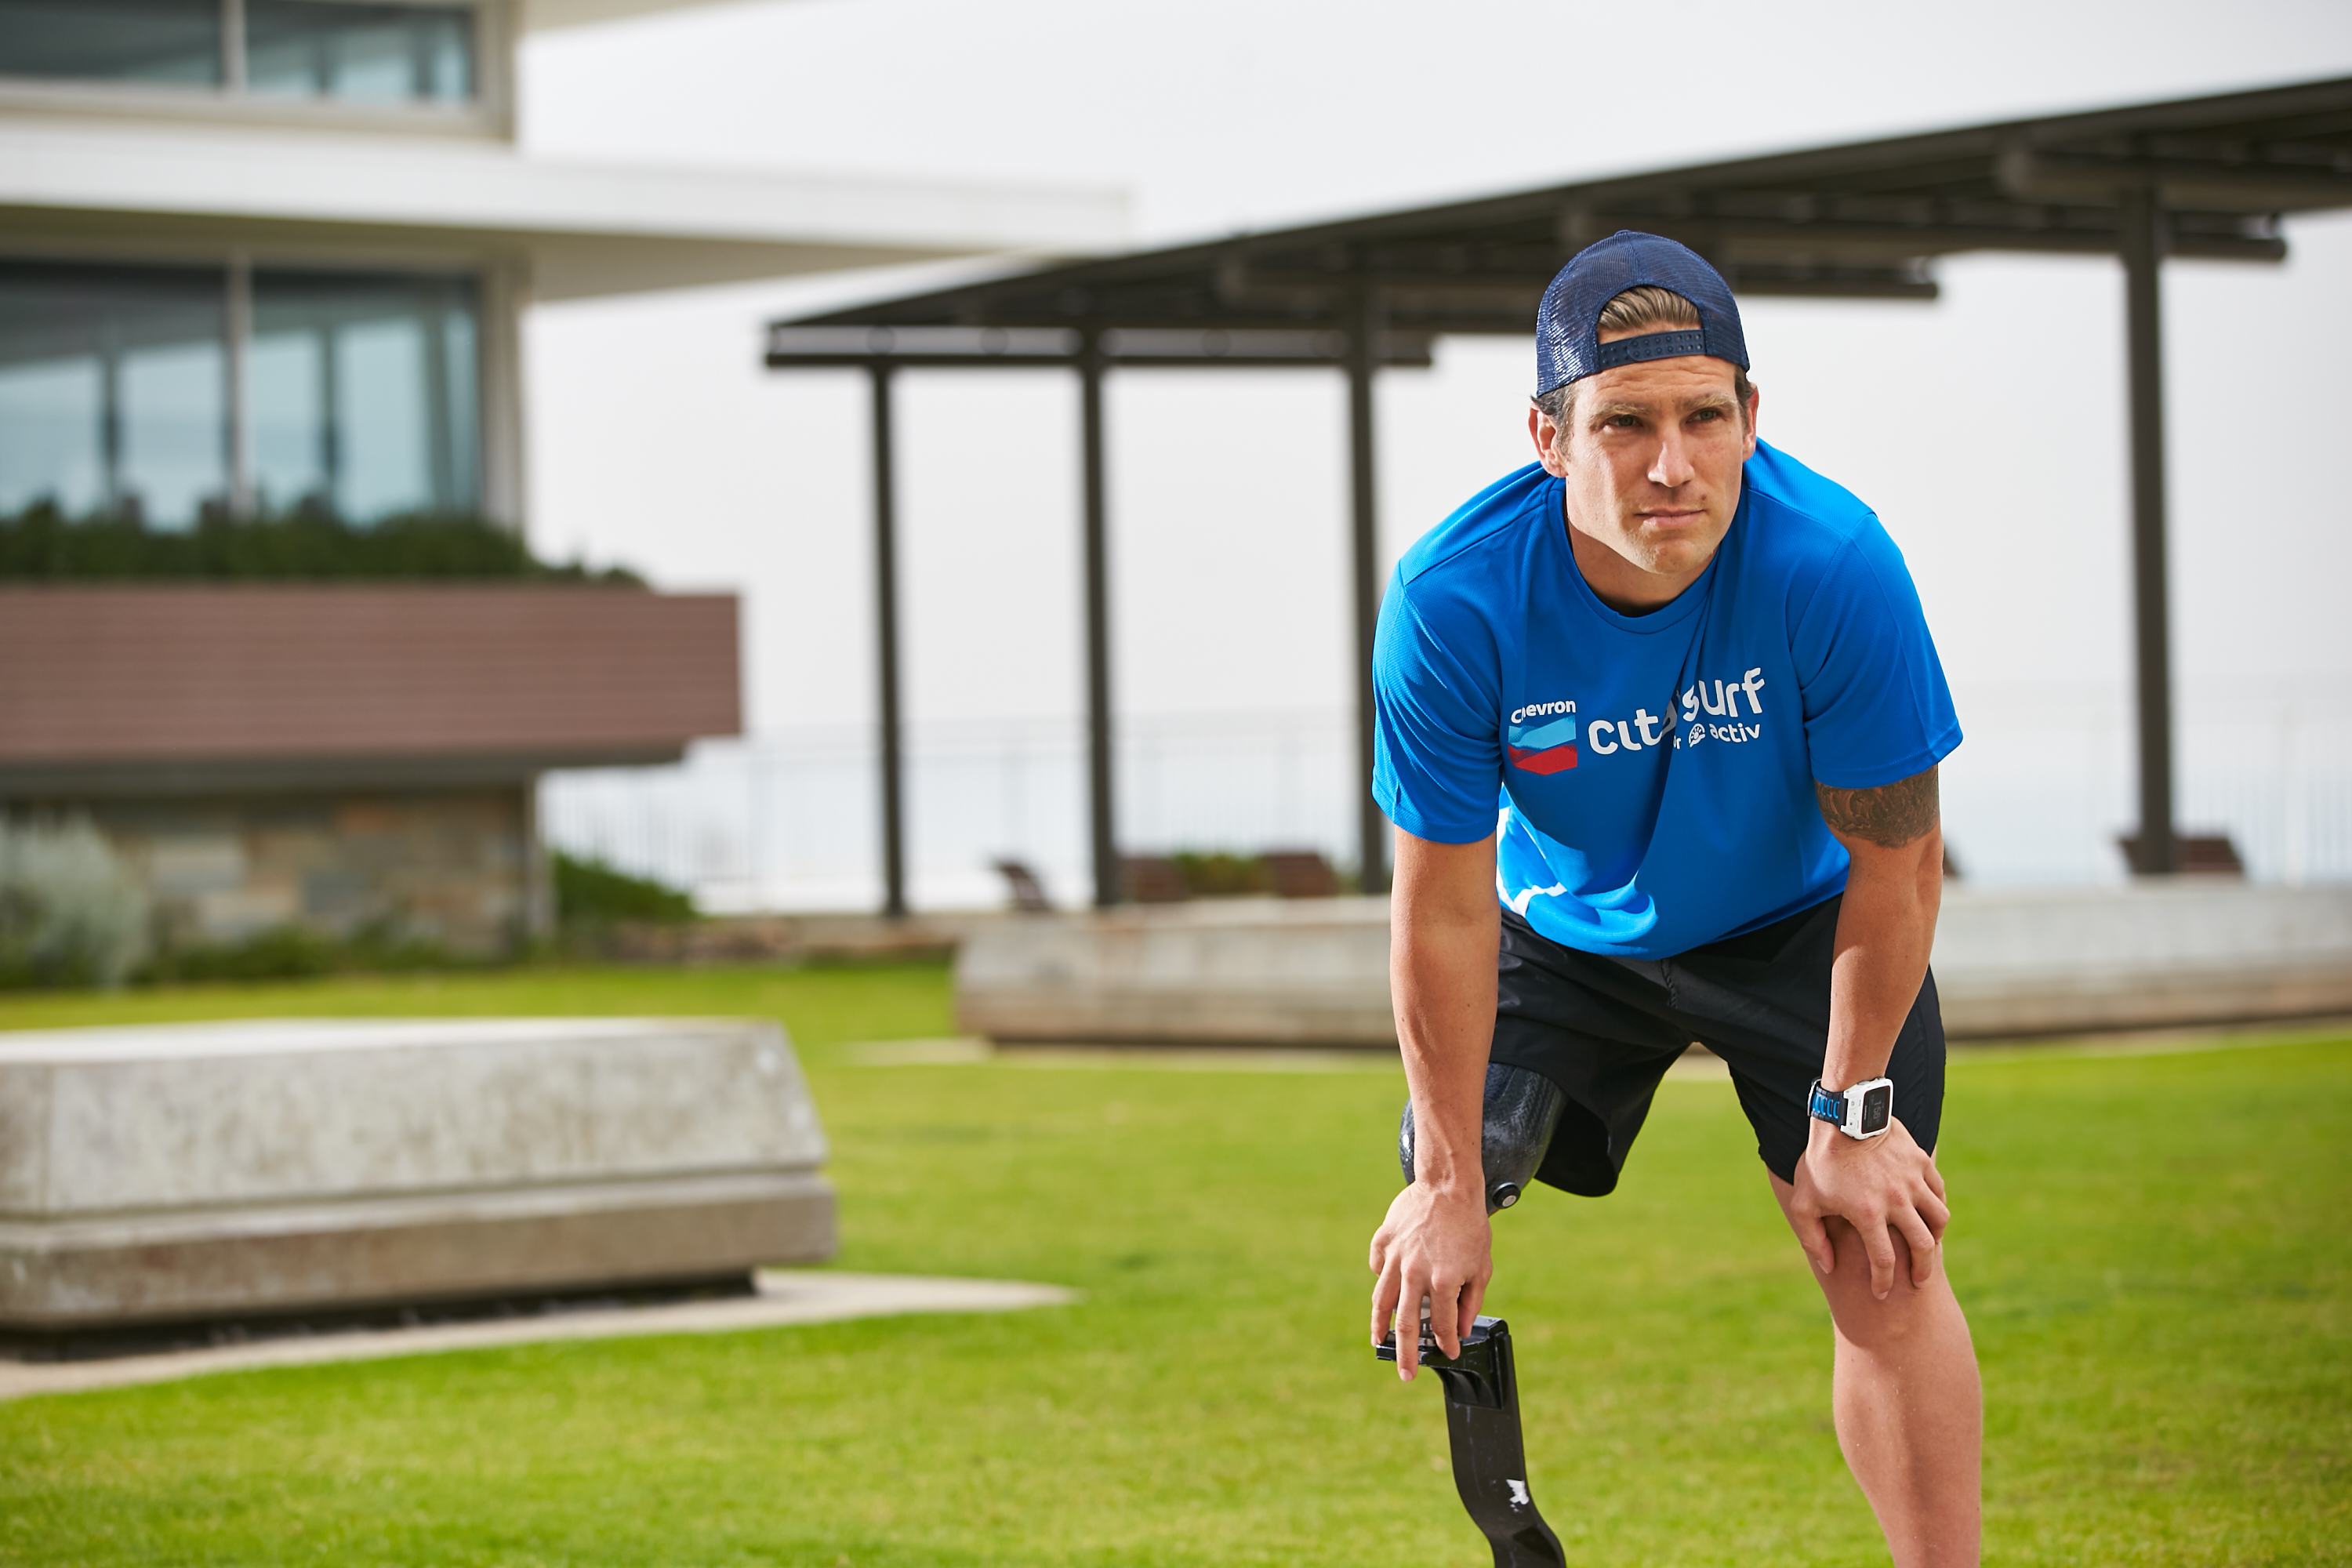 Meet Chevron City to Surf for Activ Ambassador Brant Garvey